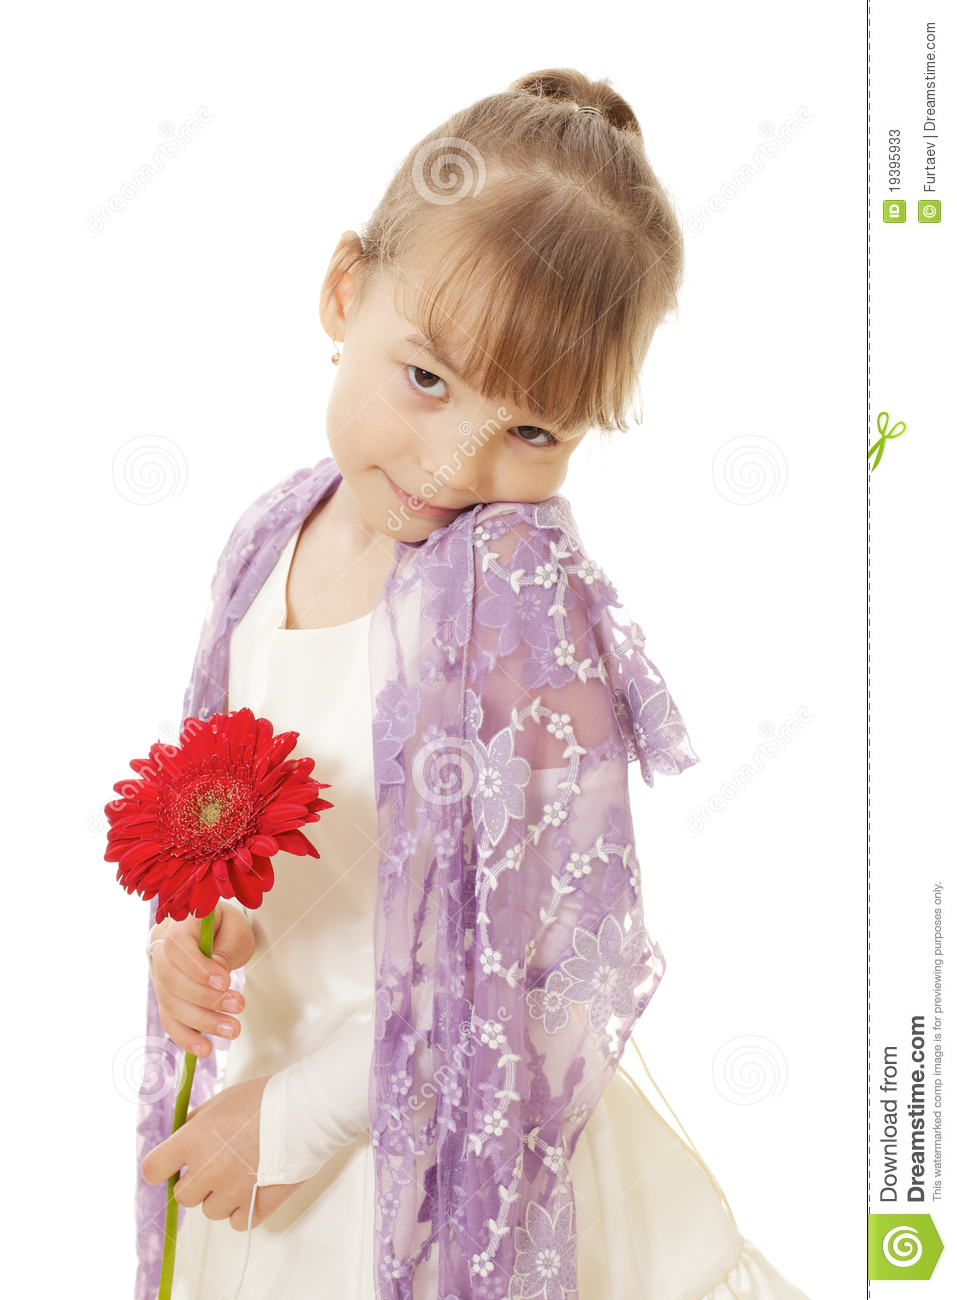 Shy Little Girl In Dress Holding Red Flower Stock Photos   Image